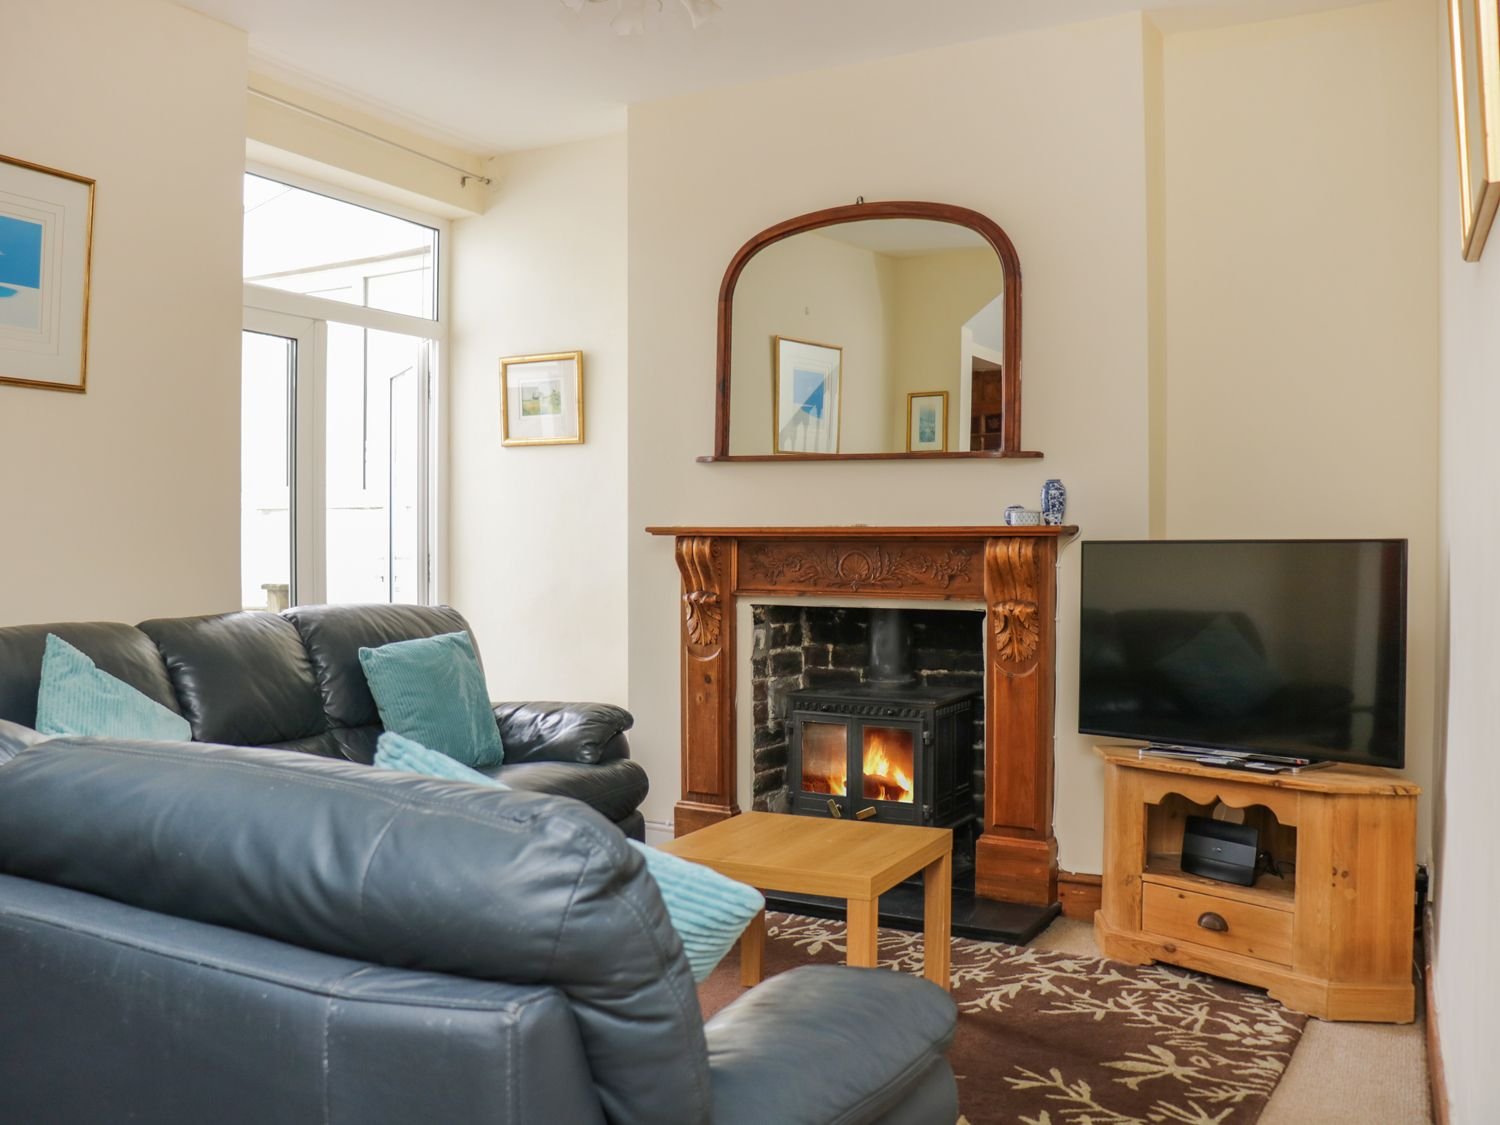 44 Heathcliff Cottage - South Wales - 966401 - photo 1